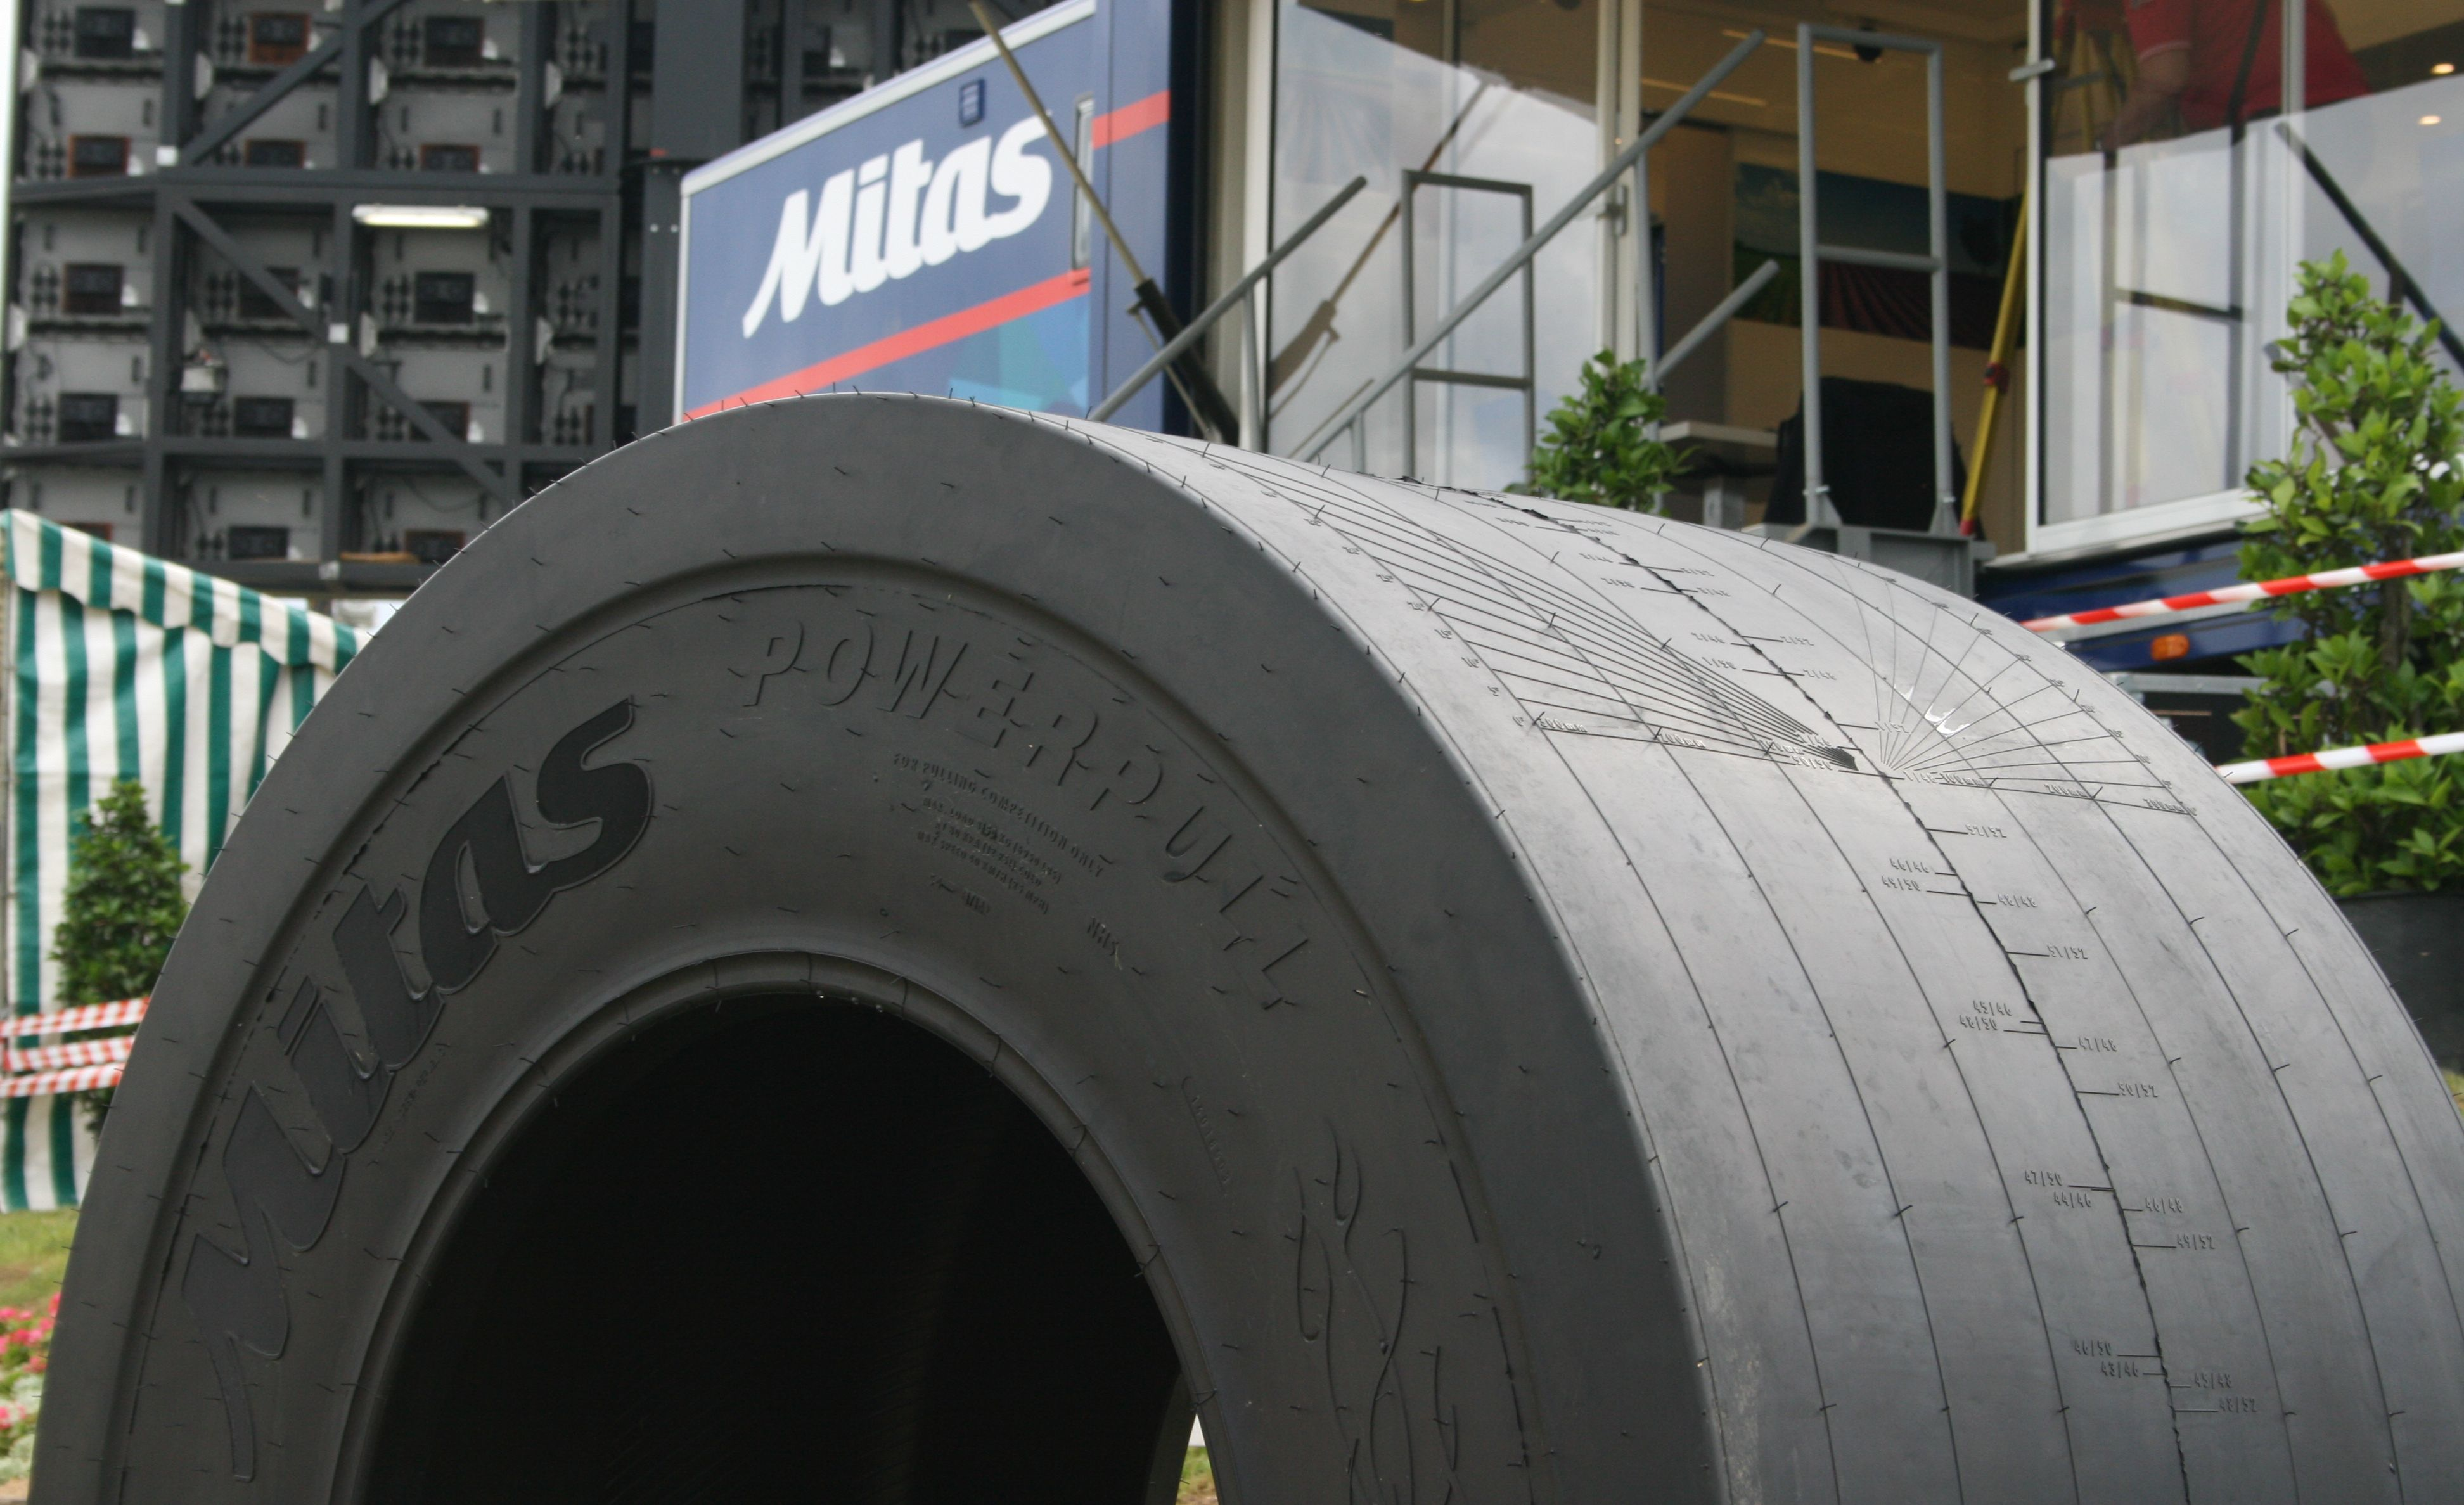 Mitas Powerpull will be produced without a tread pattern as a slick tire